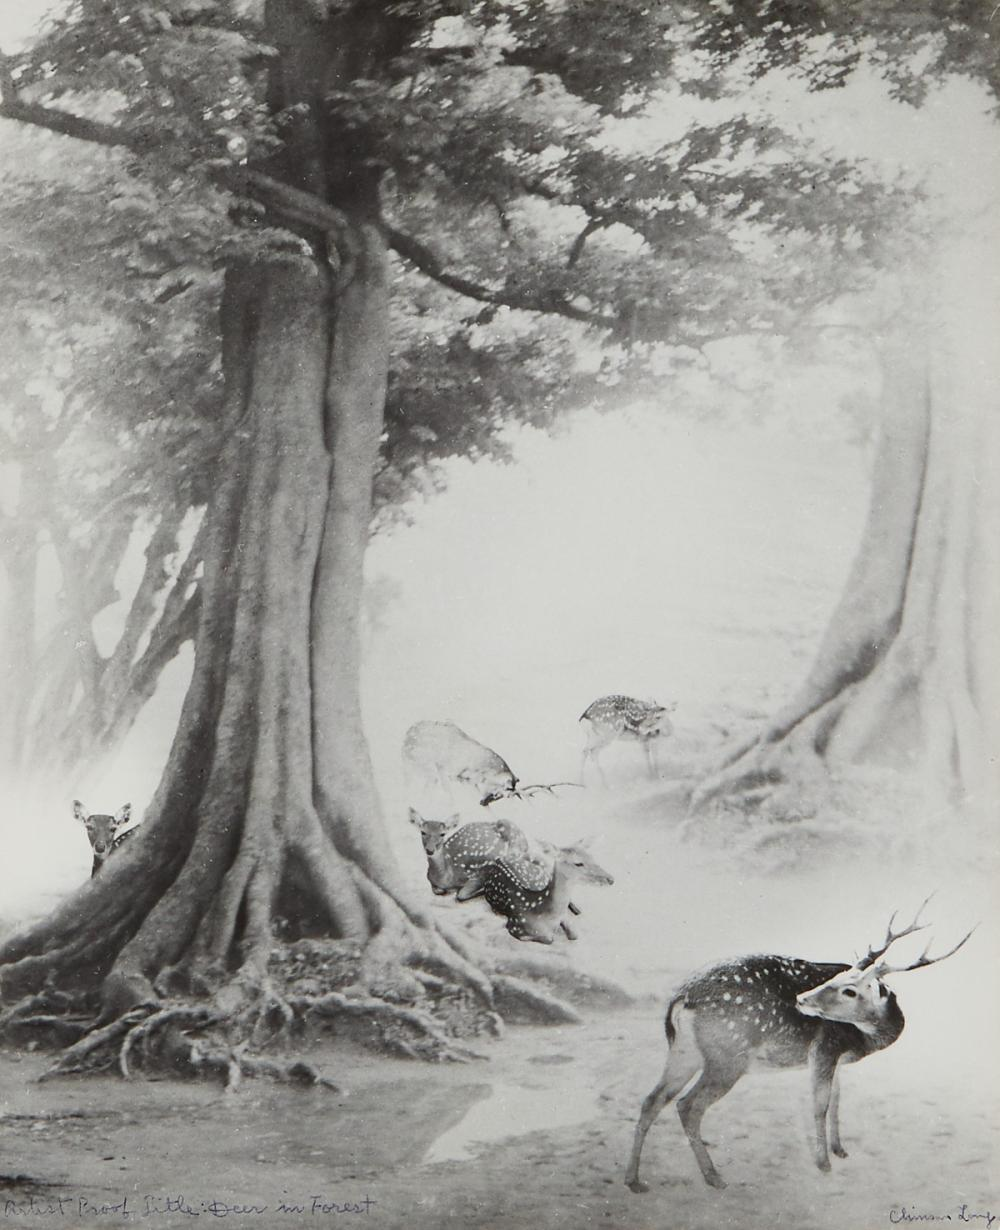 """Chin San Long Photograph """"Deer in Forest"""" Signed Silver Gelatin"""